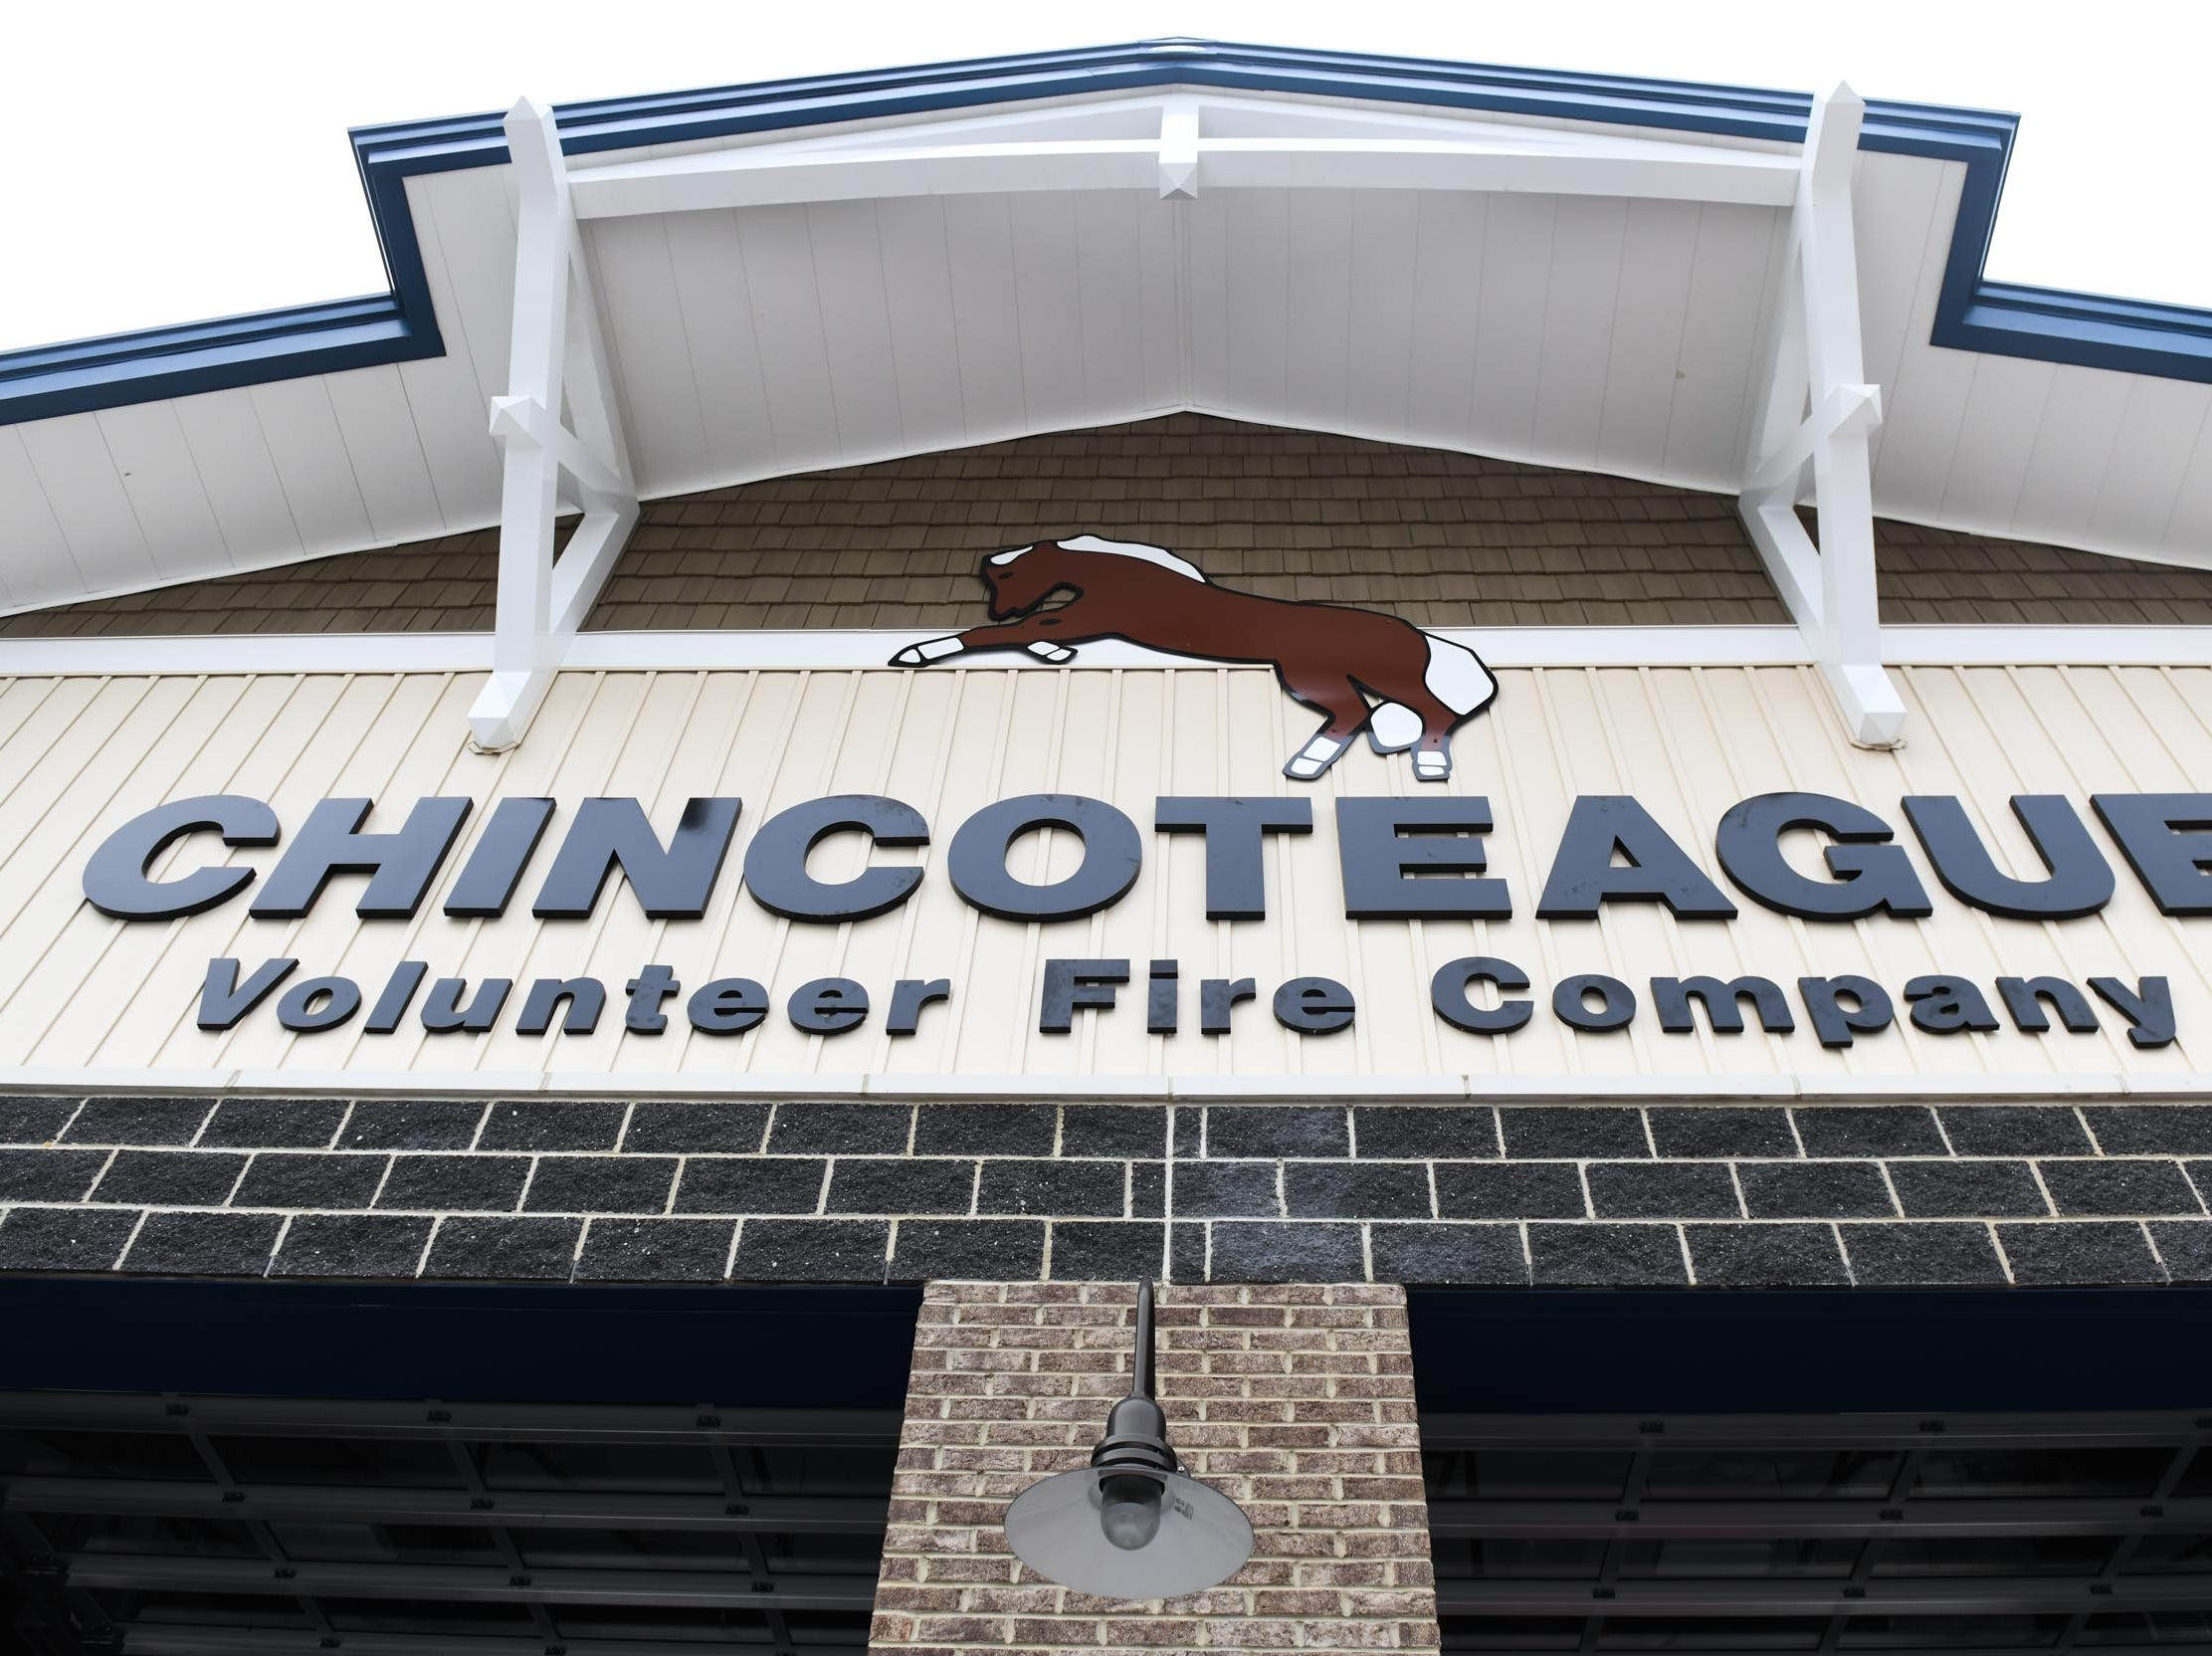 The new Chincoteague Volunteer Fire Department has started the process of moving into their new location at 5175 Chicken City Road at on Wednesday, May 1, 2019.